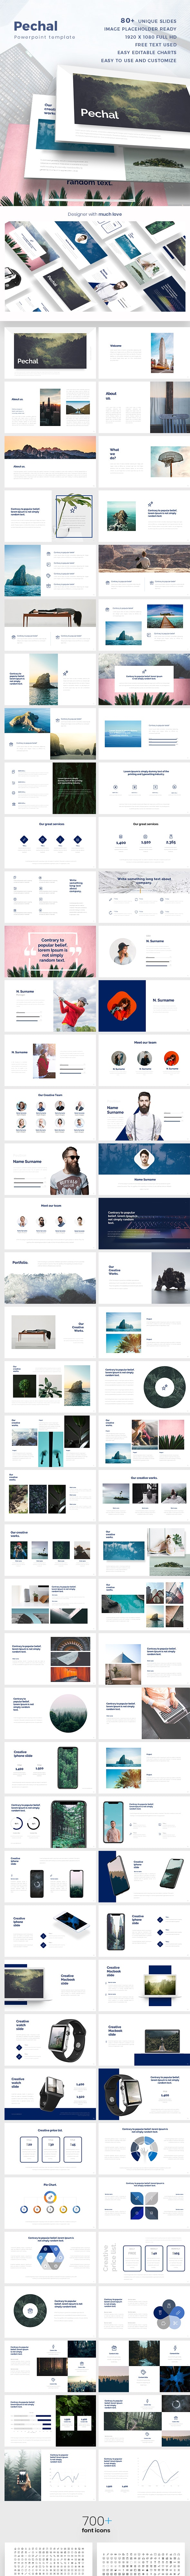 Pechal Powerpoint Presentation Template - PowerPoint Templates Presentation Templates